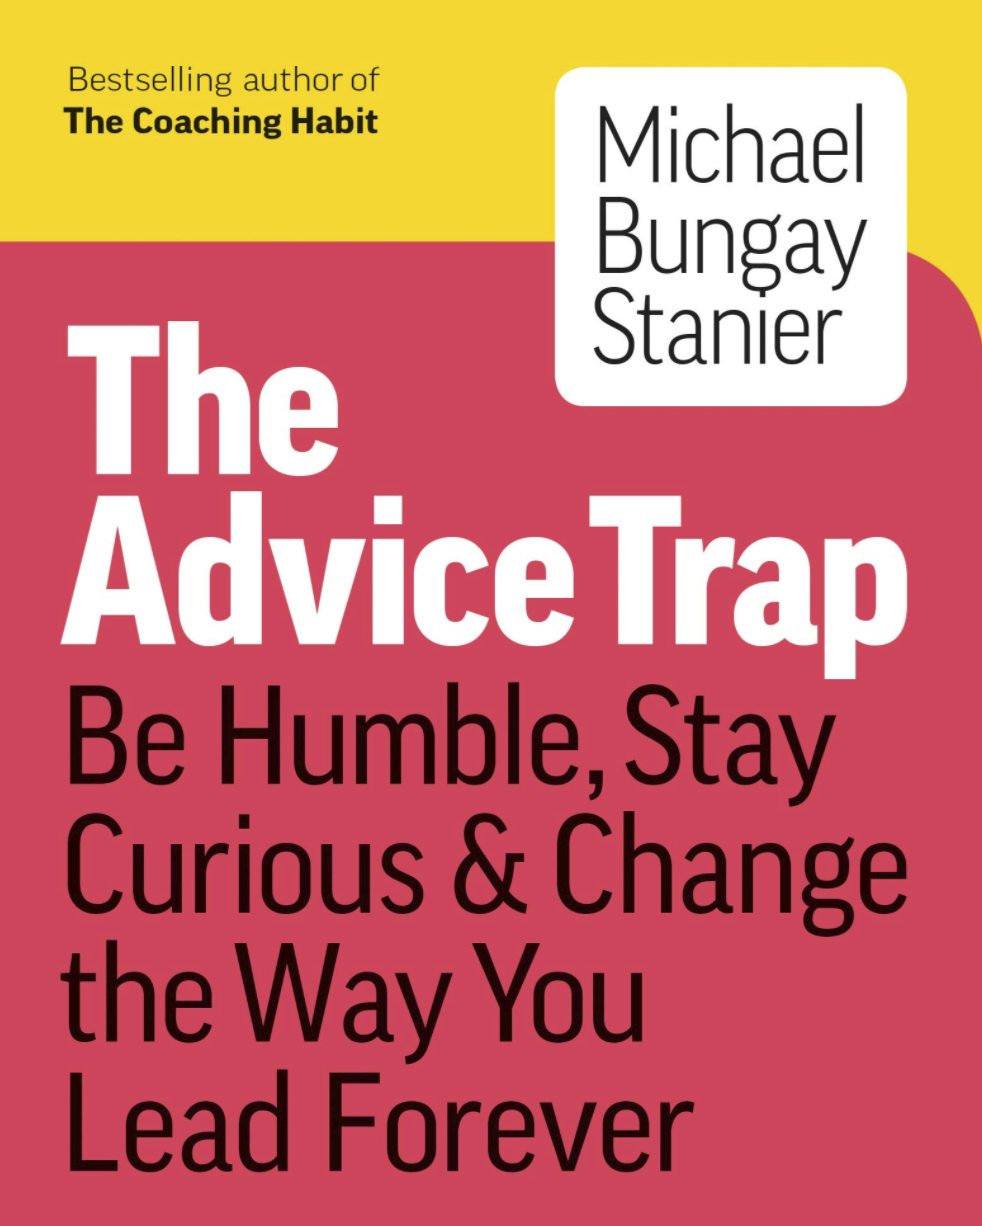 The Advice Trap - Be Humble, Stay Curious & Change the Way You Lead Forever by Michael Bungay Stanier